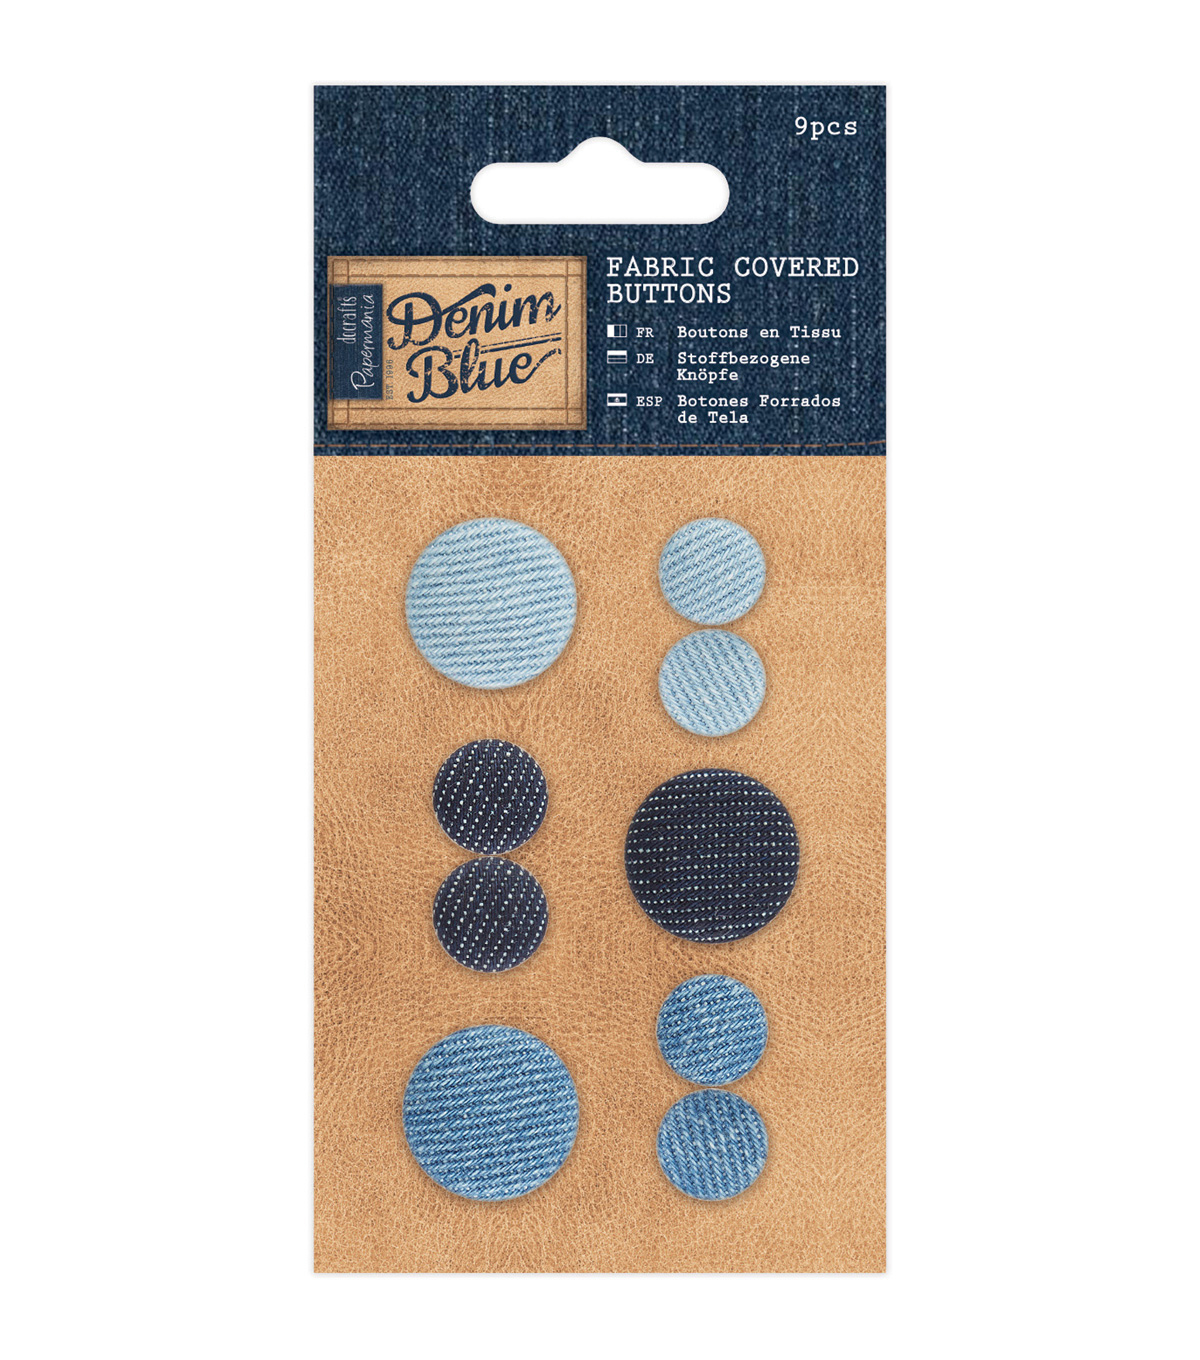 Papermania Denim Blue 9ct Fabric Covered Buttons